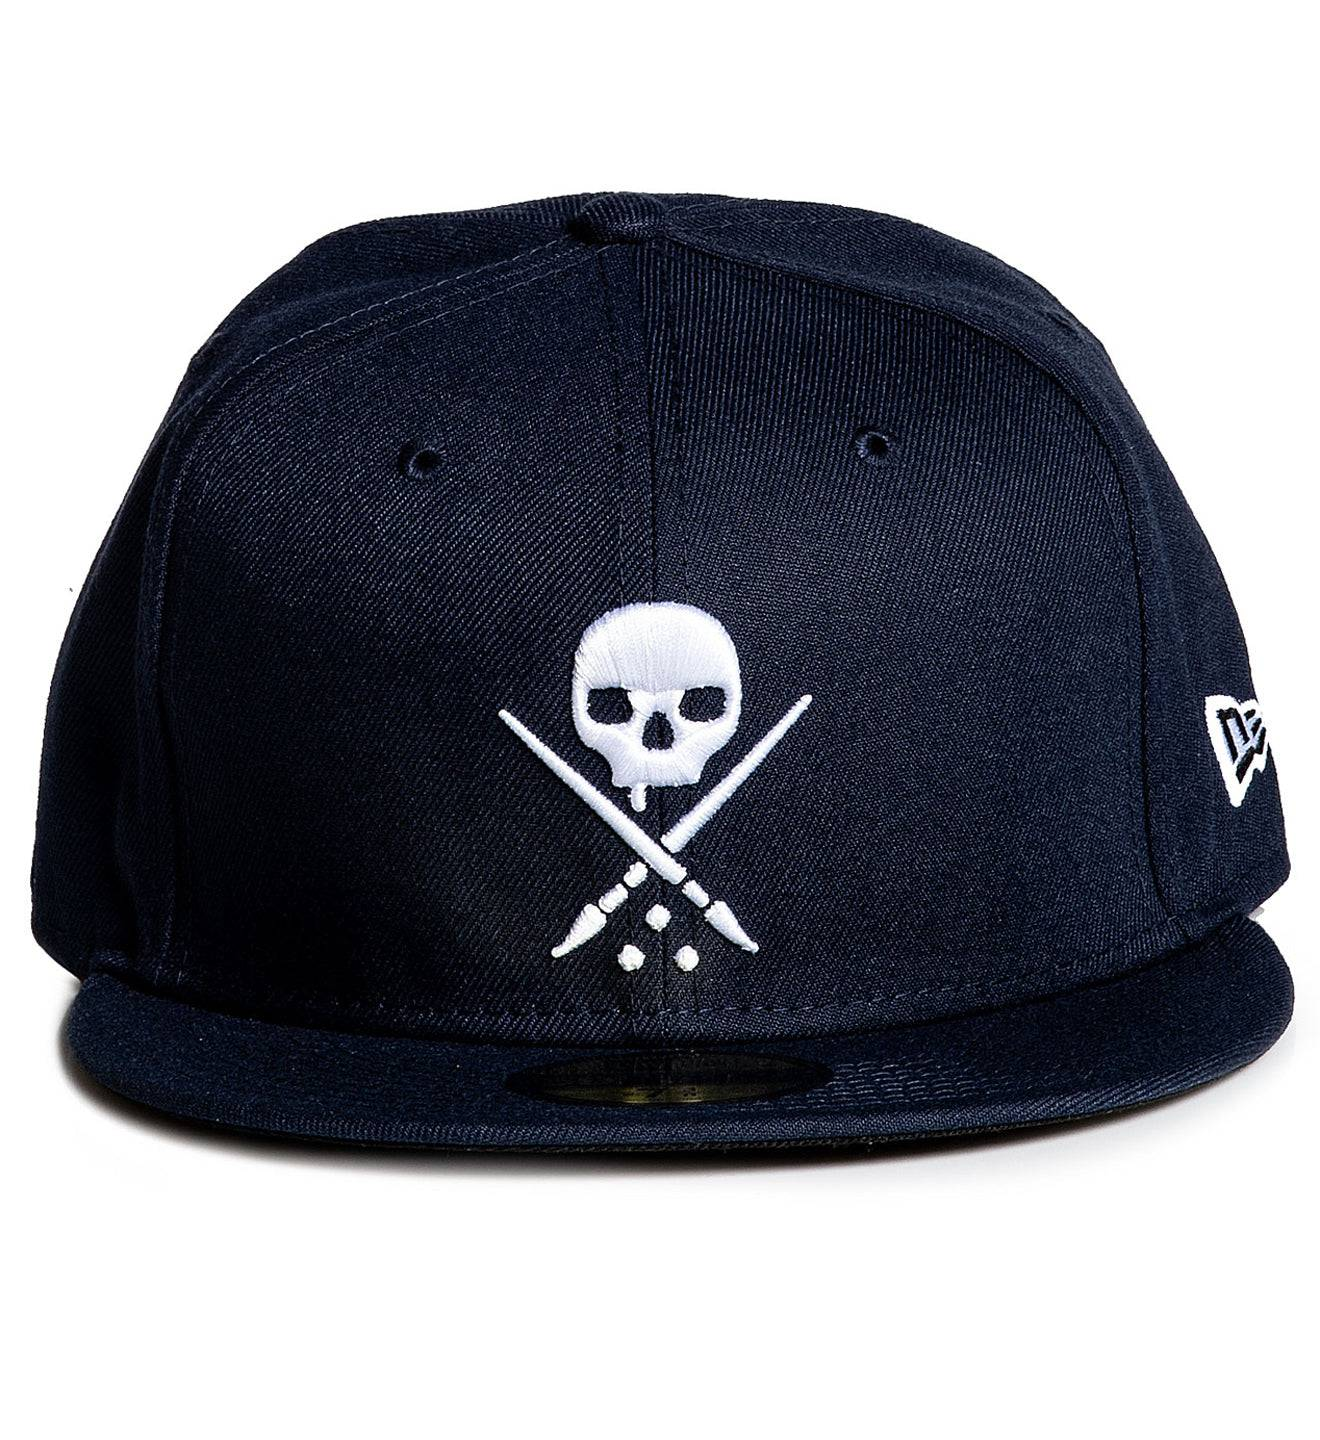 Mens Fitted Badge Navy, NAVY / 67/8